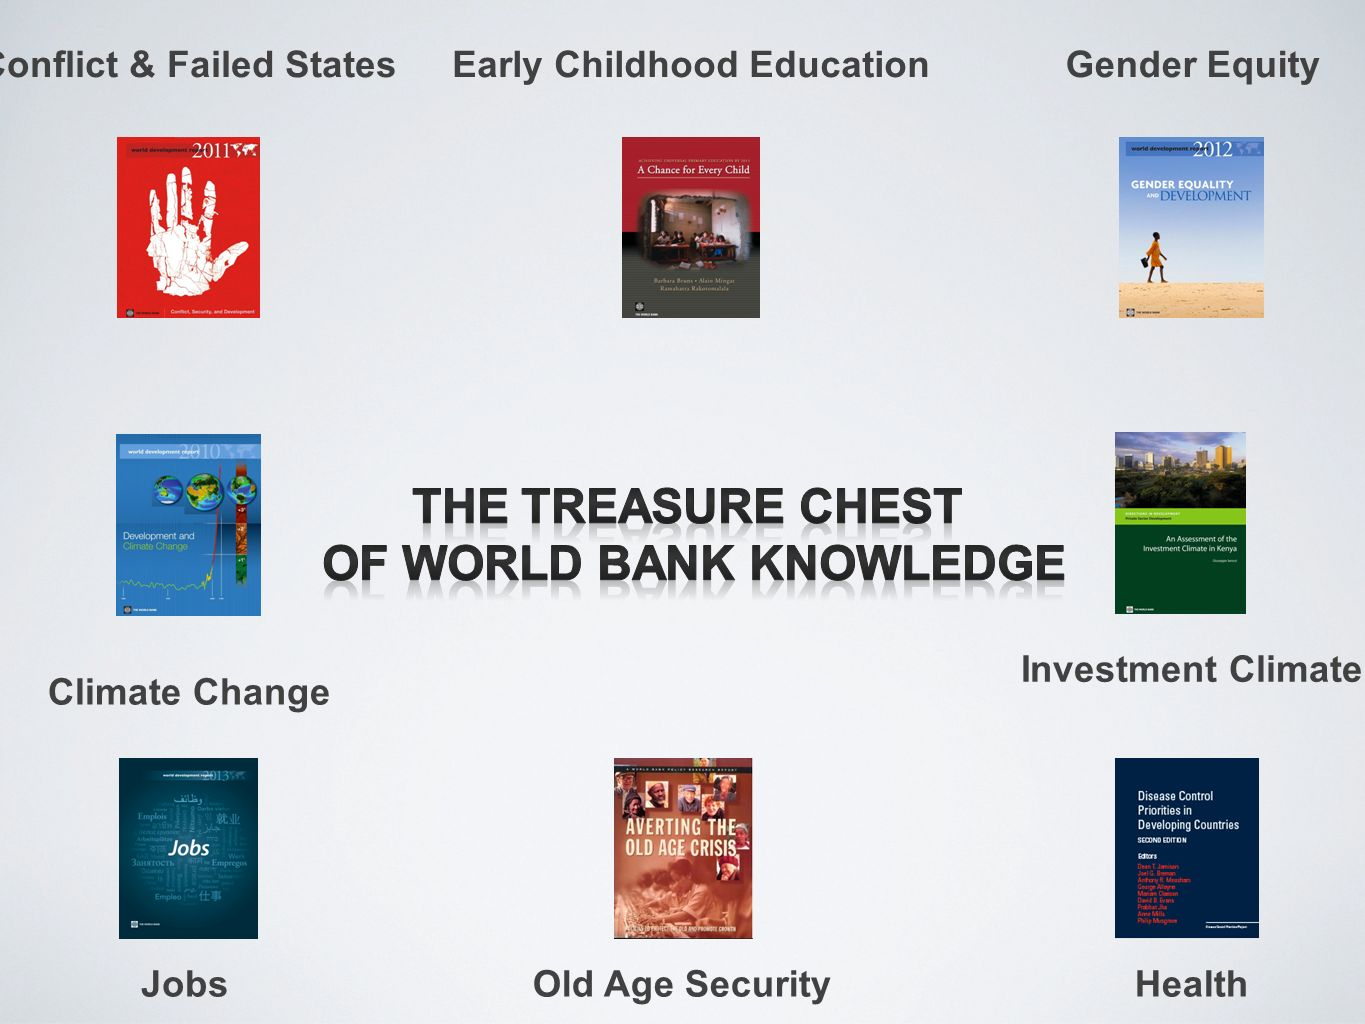 The Treasure Chest of World Bank Knowledge